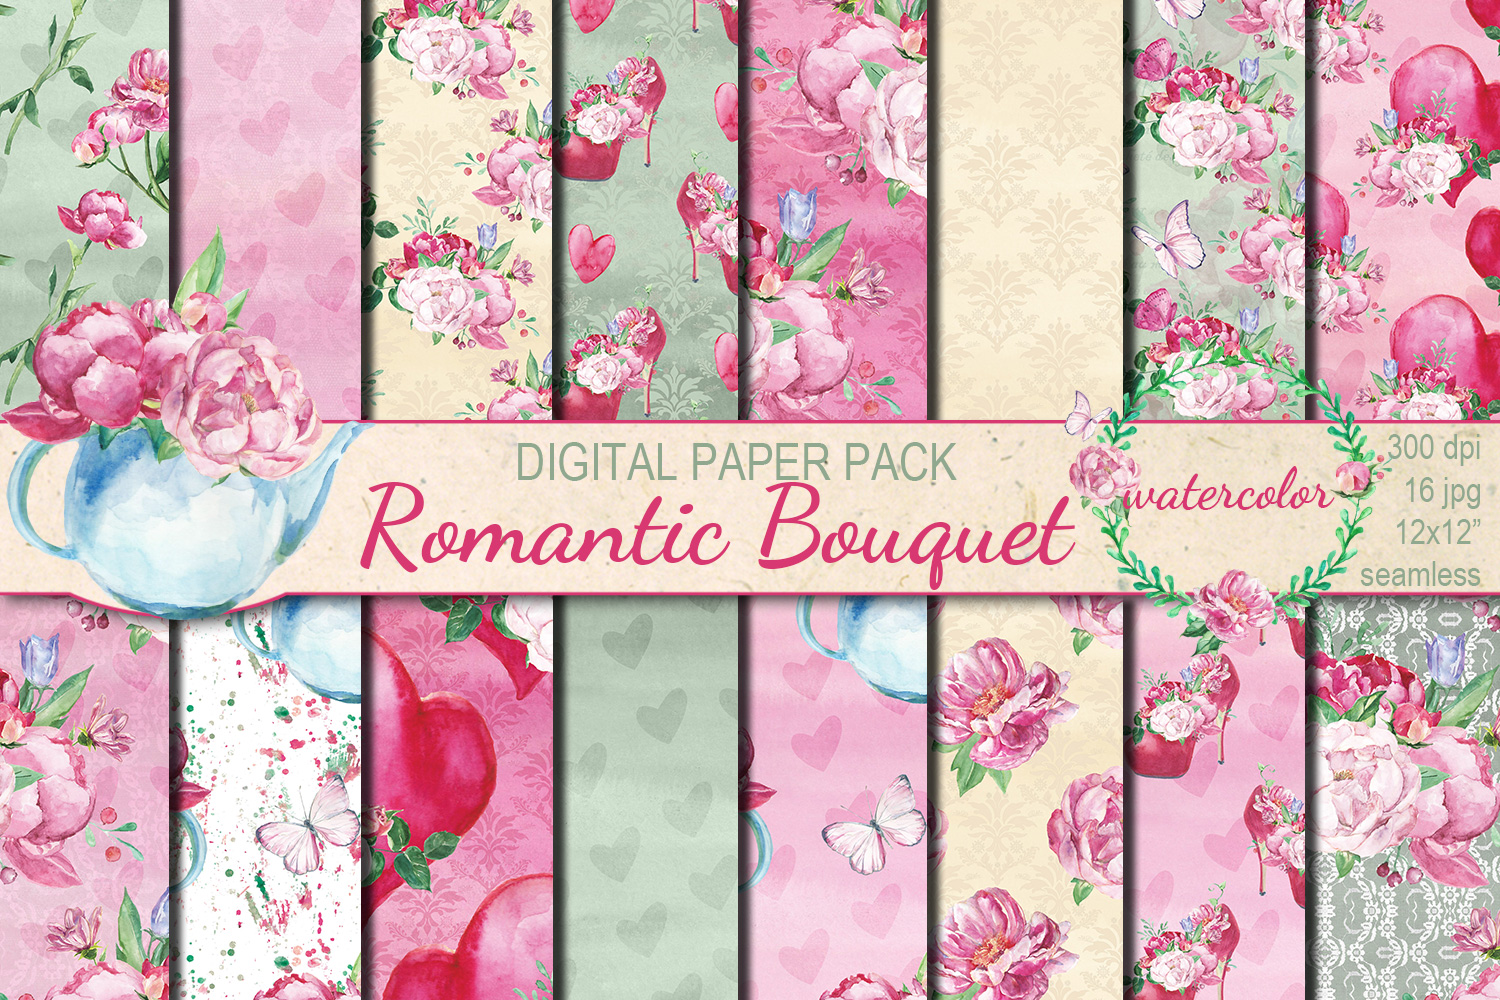 Watercolor Romantic Bouquet seamless digital paper pack example image 1